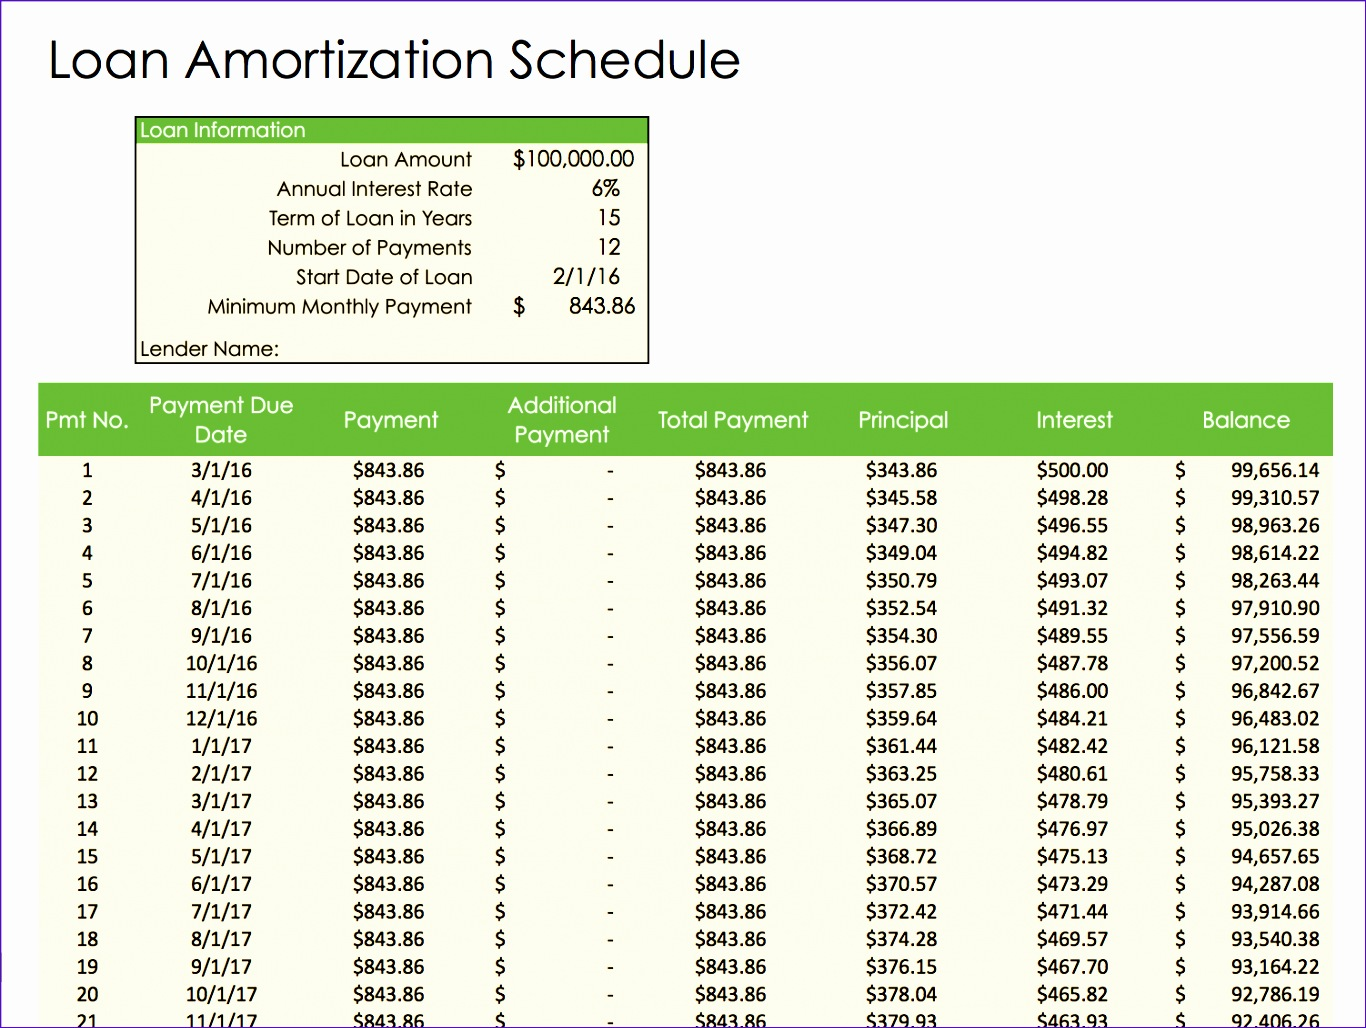 Monthly Amortization Schedule Excel Template Xgtaf Beautiful Free Weekly Schedule Templates for Excel Smartsheet